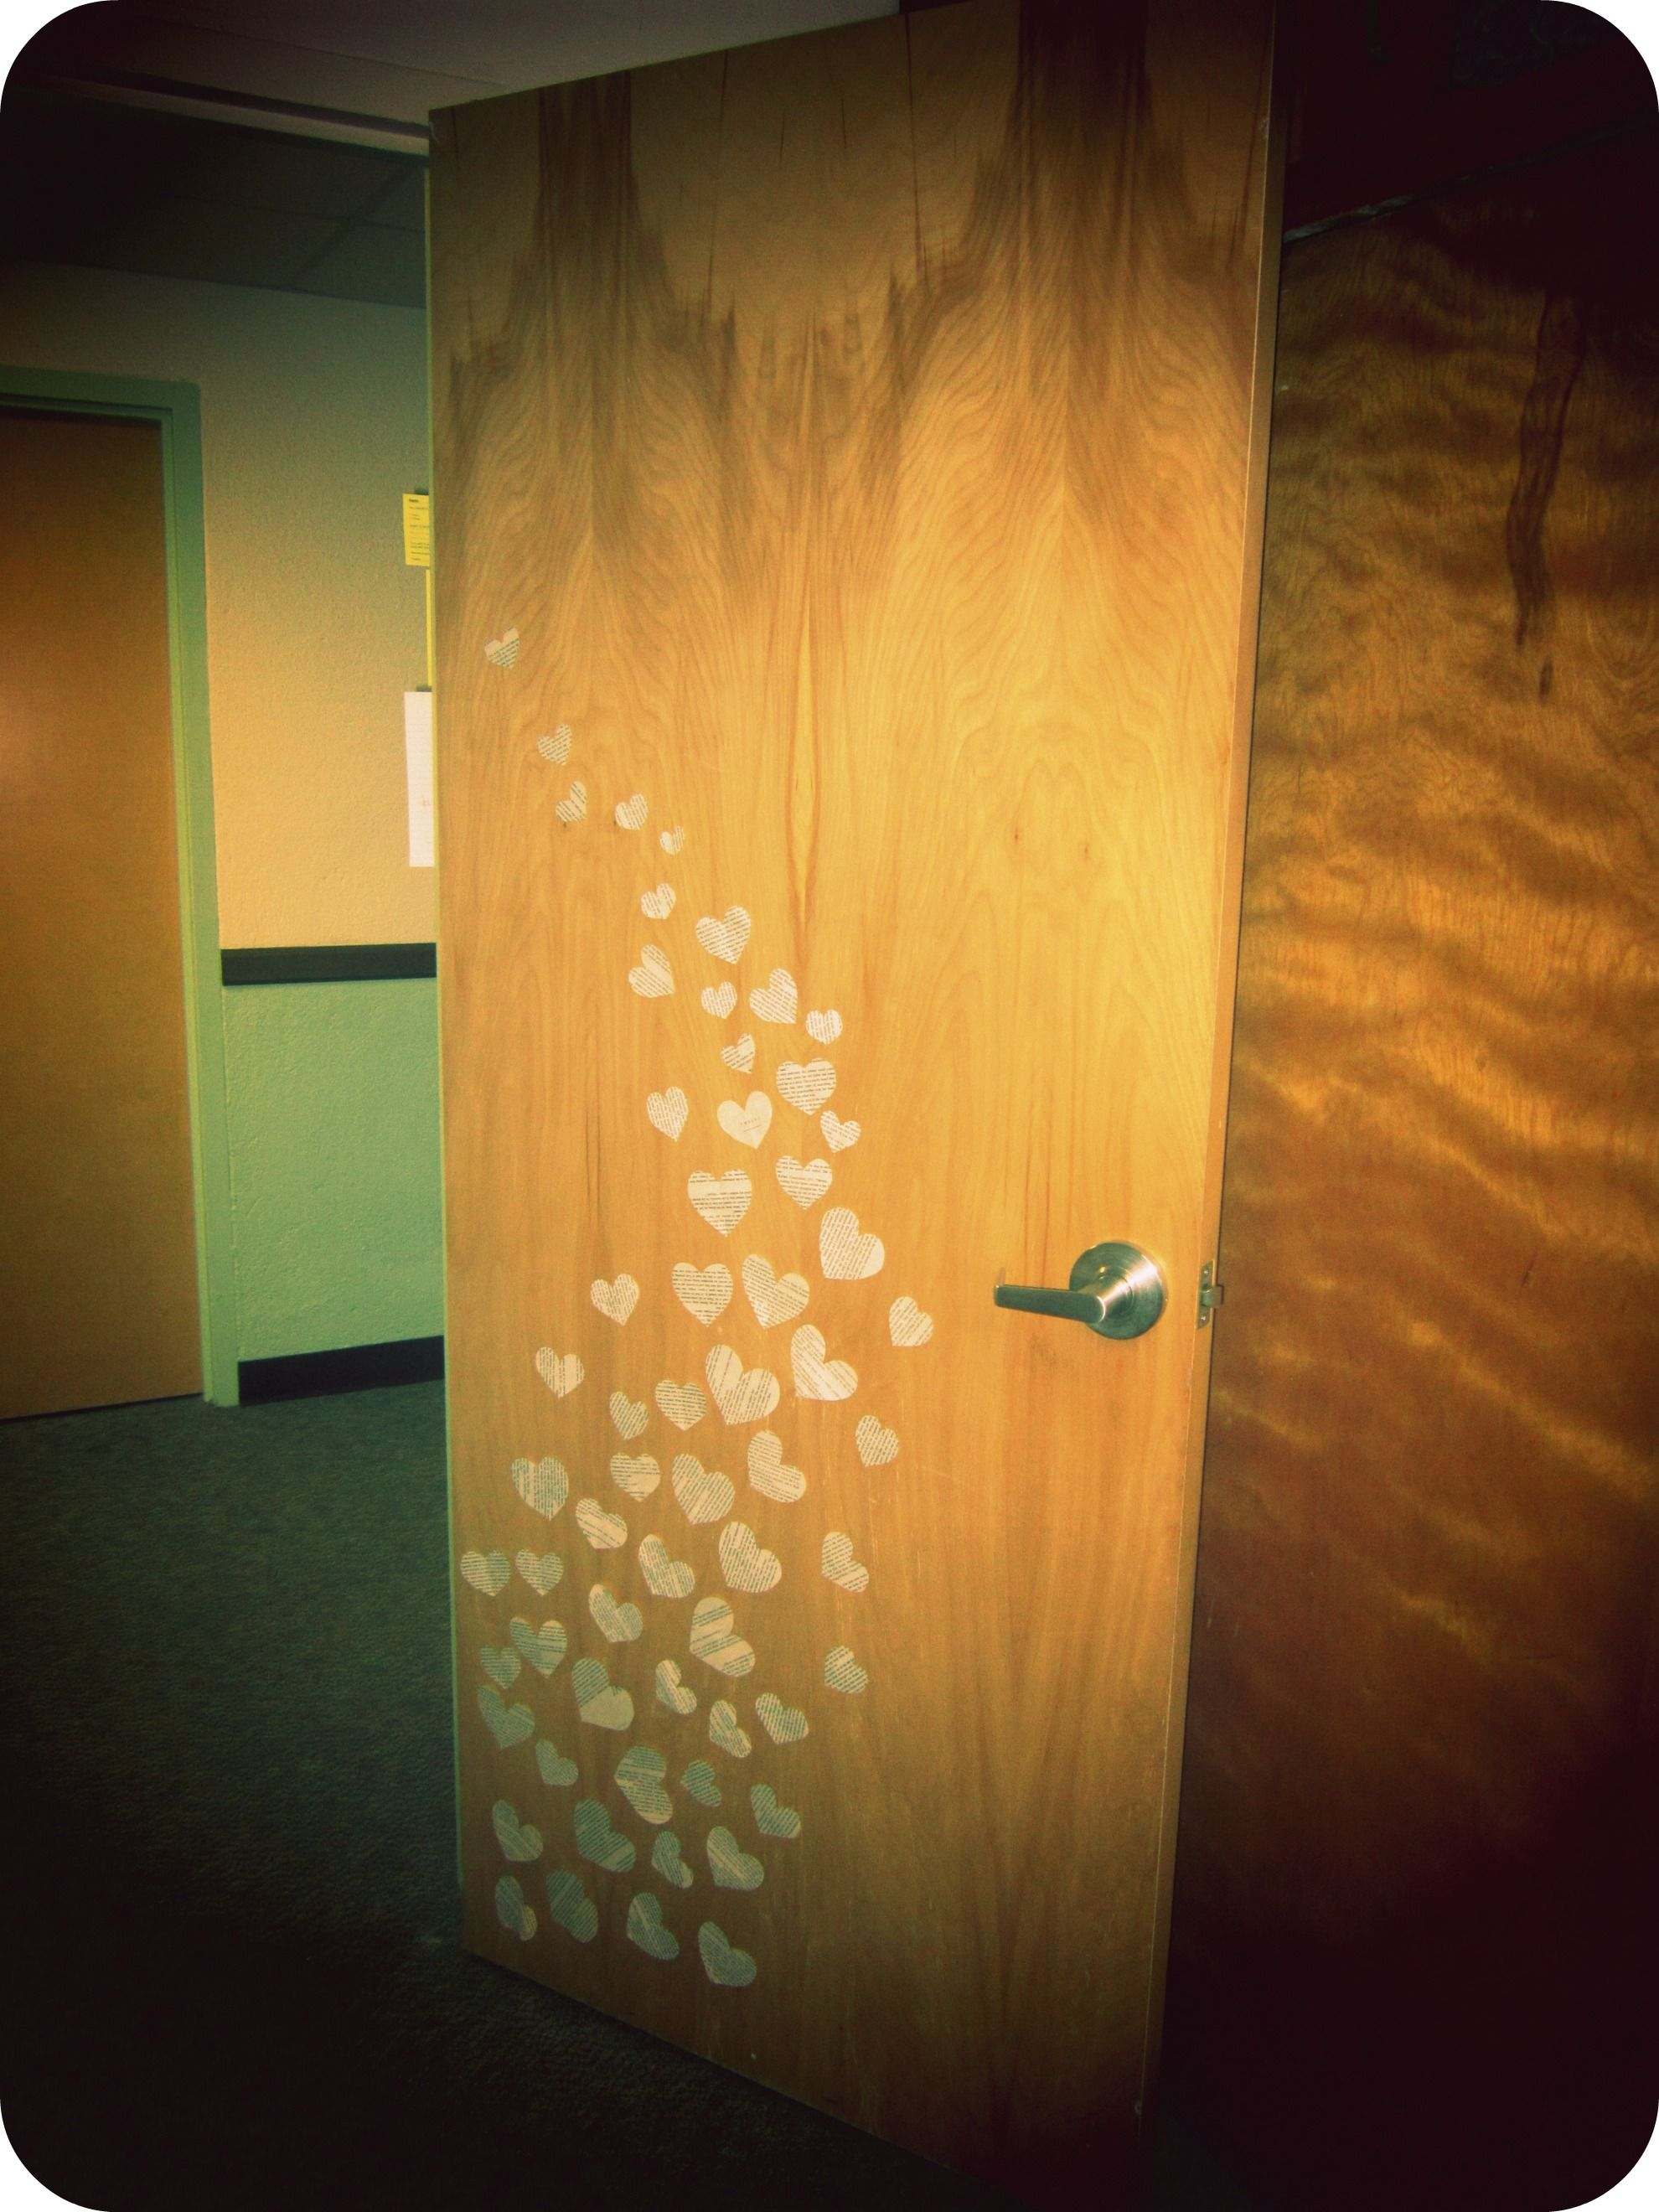 Easy and quick way to decorate your door! Suggest non-damaging items ...